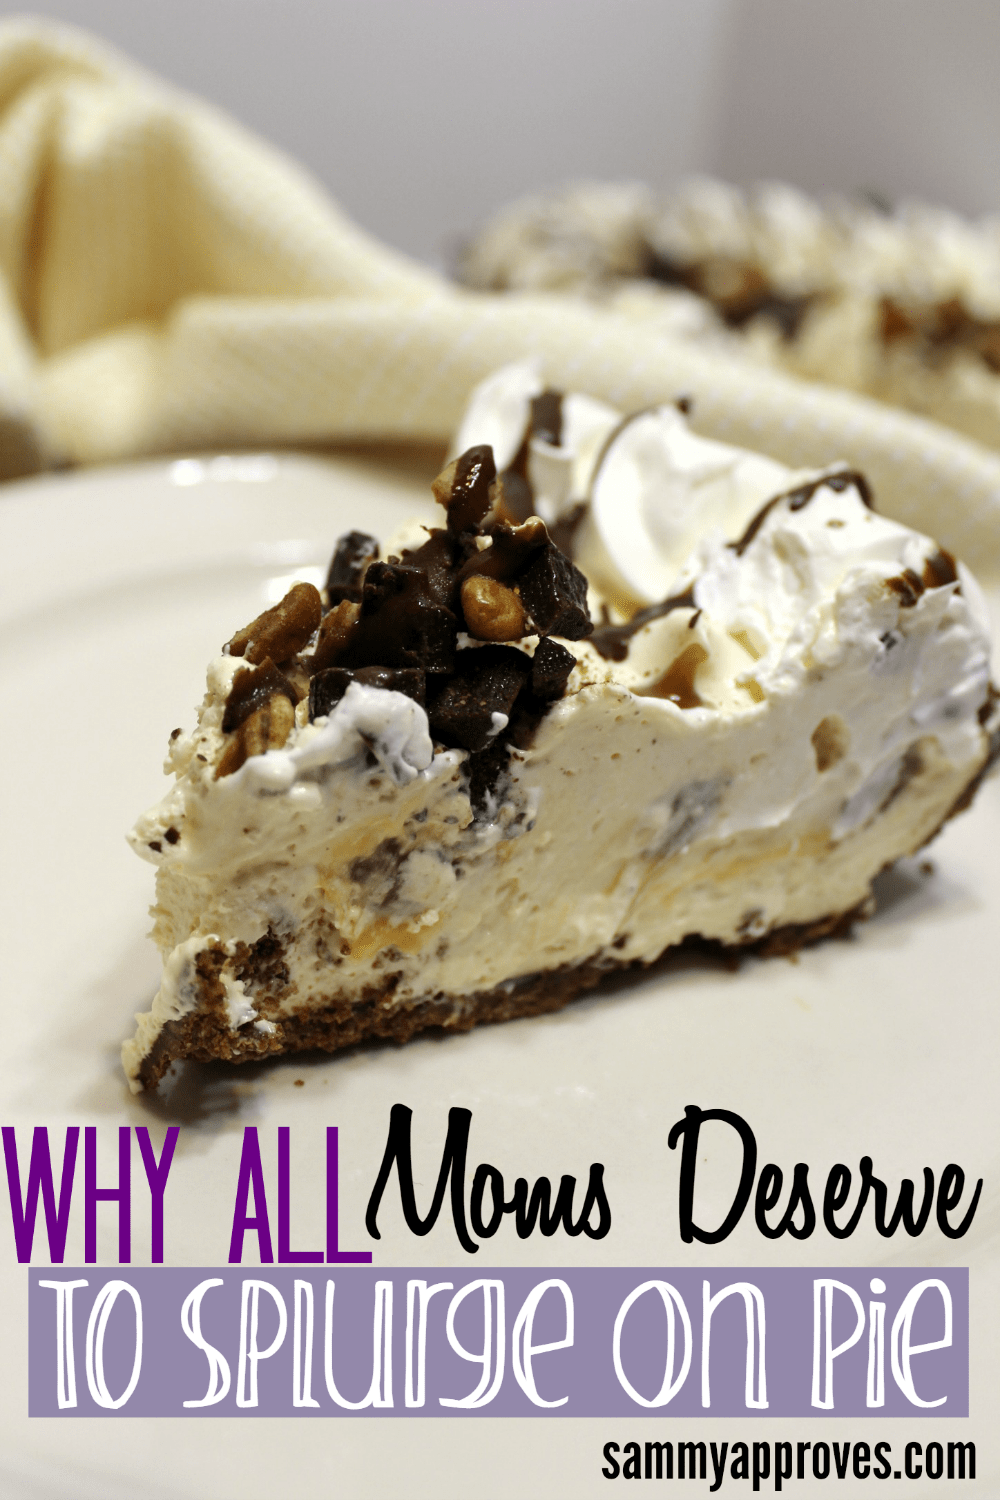 Why All Moms Deserve to Splurge on Pie!